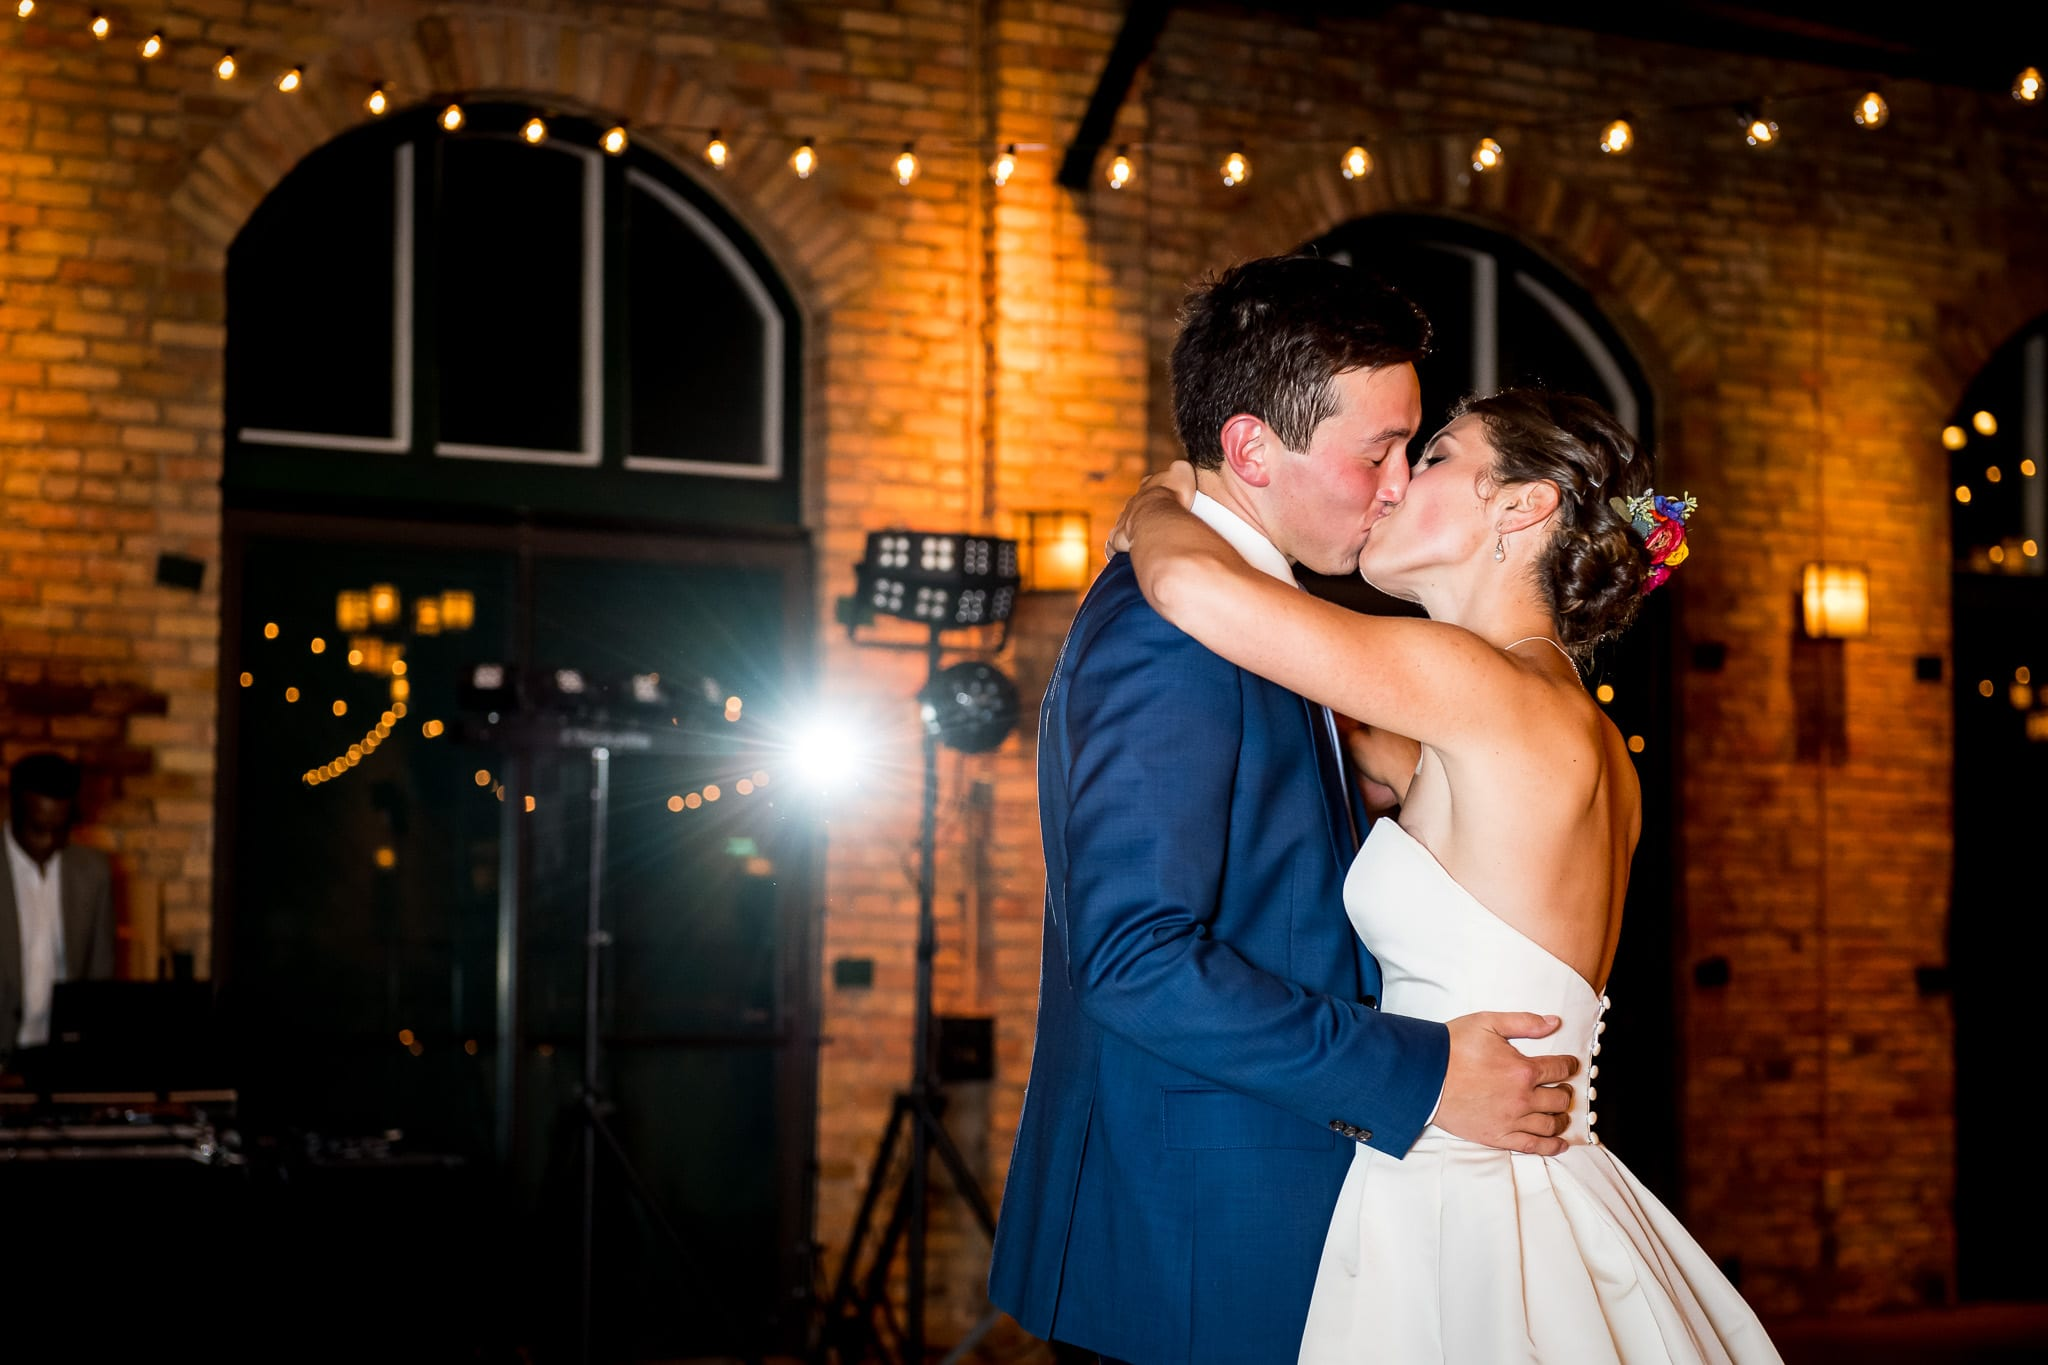 Bride and groom kiss on the dance floor during their first dance